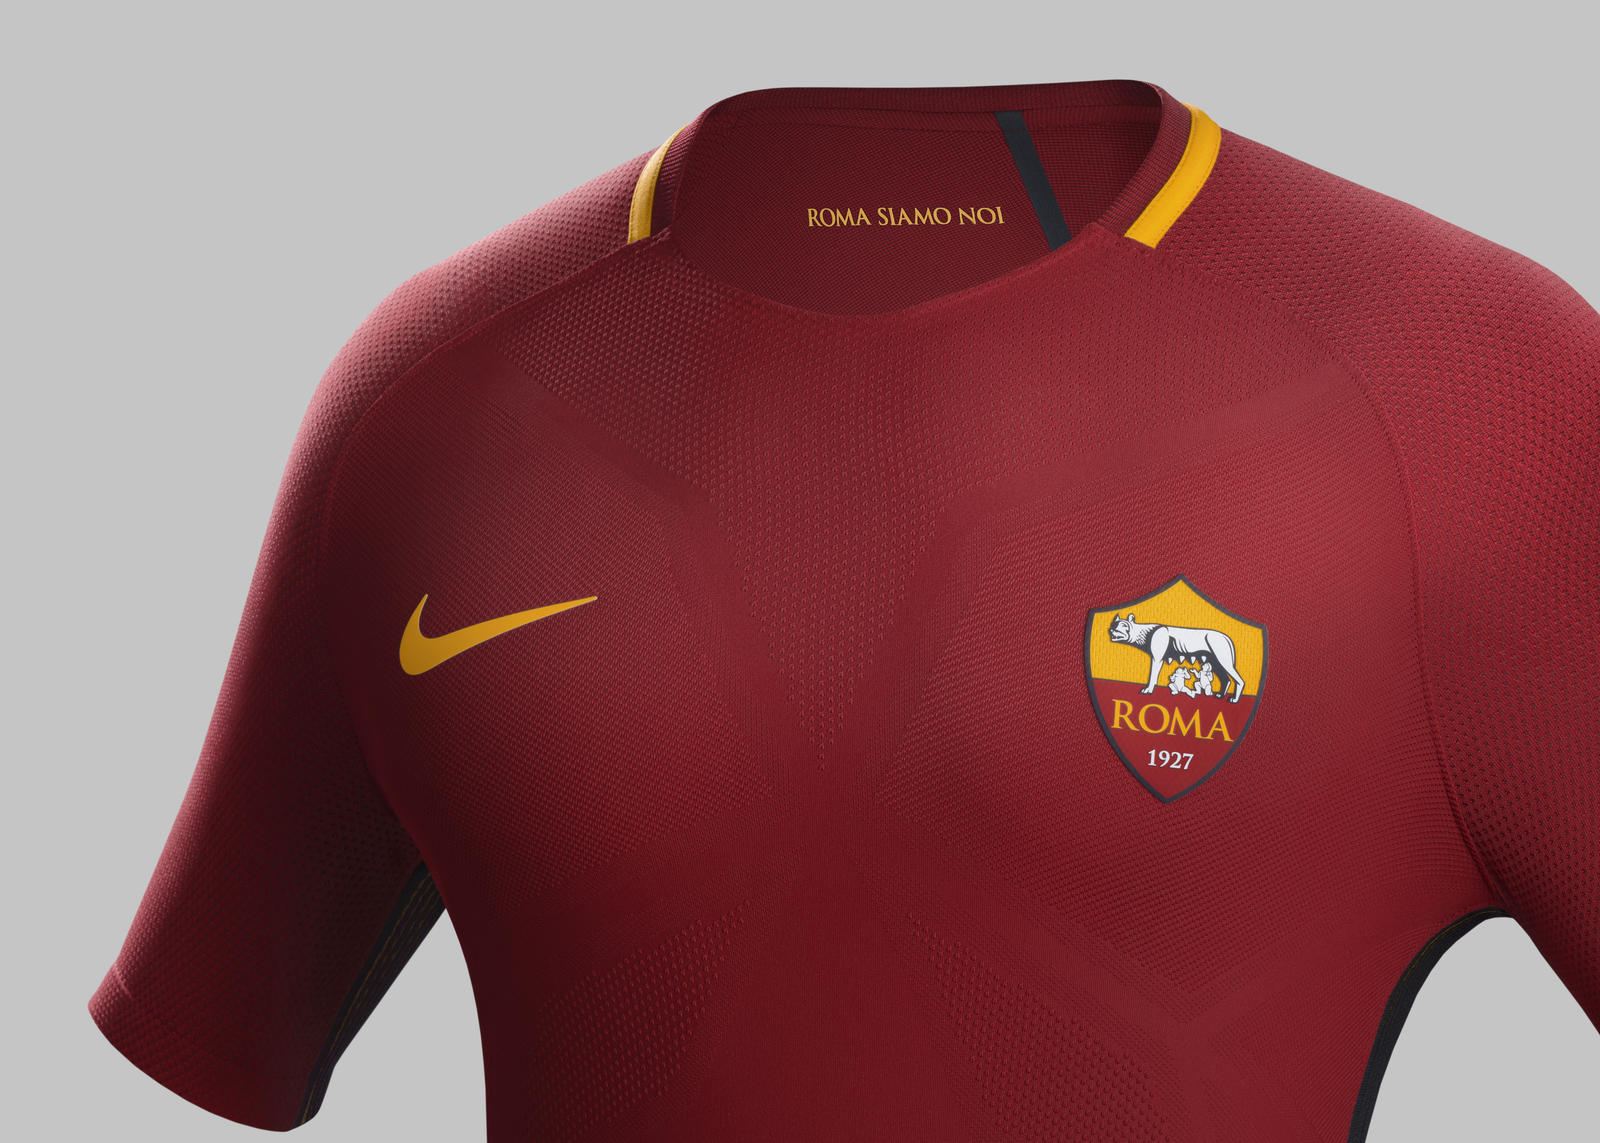 Fy17 18 club kits h crest match as roma r rectangle 1600